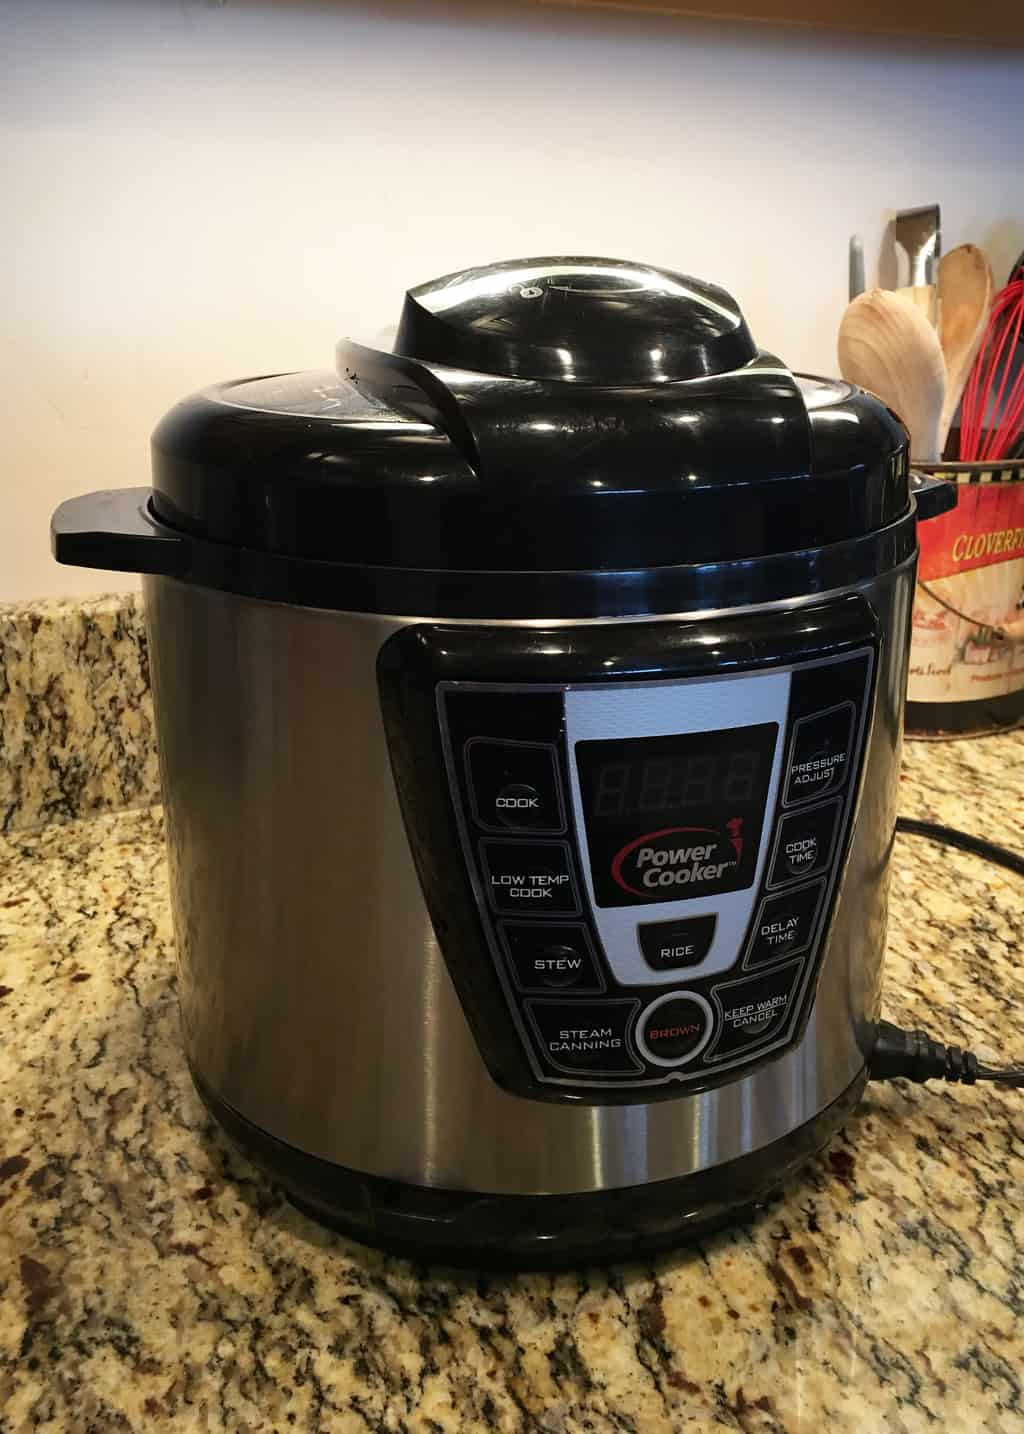 an instant pot on the counter